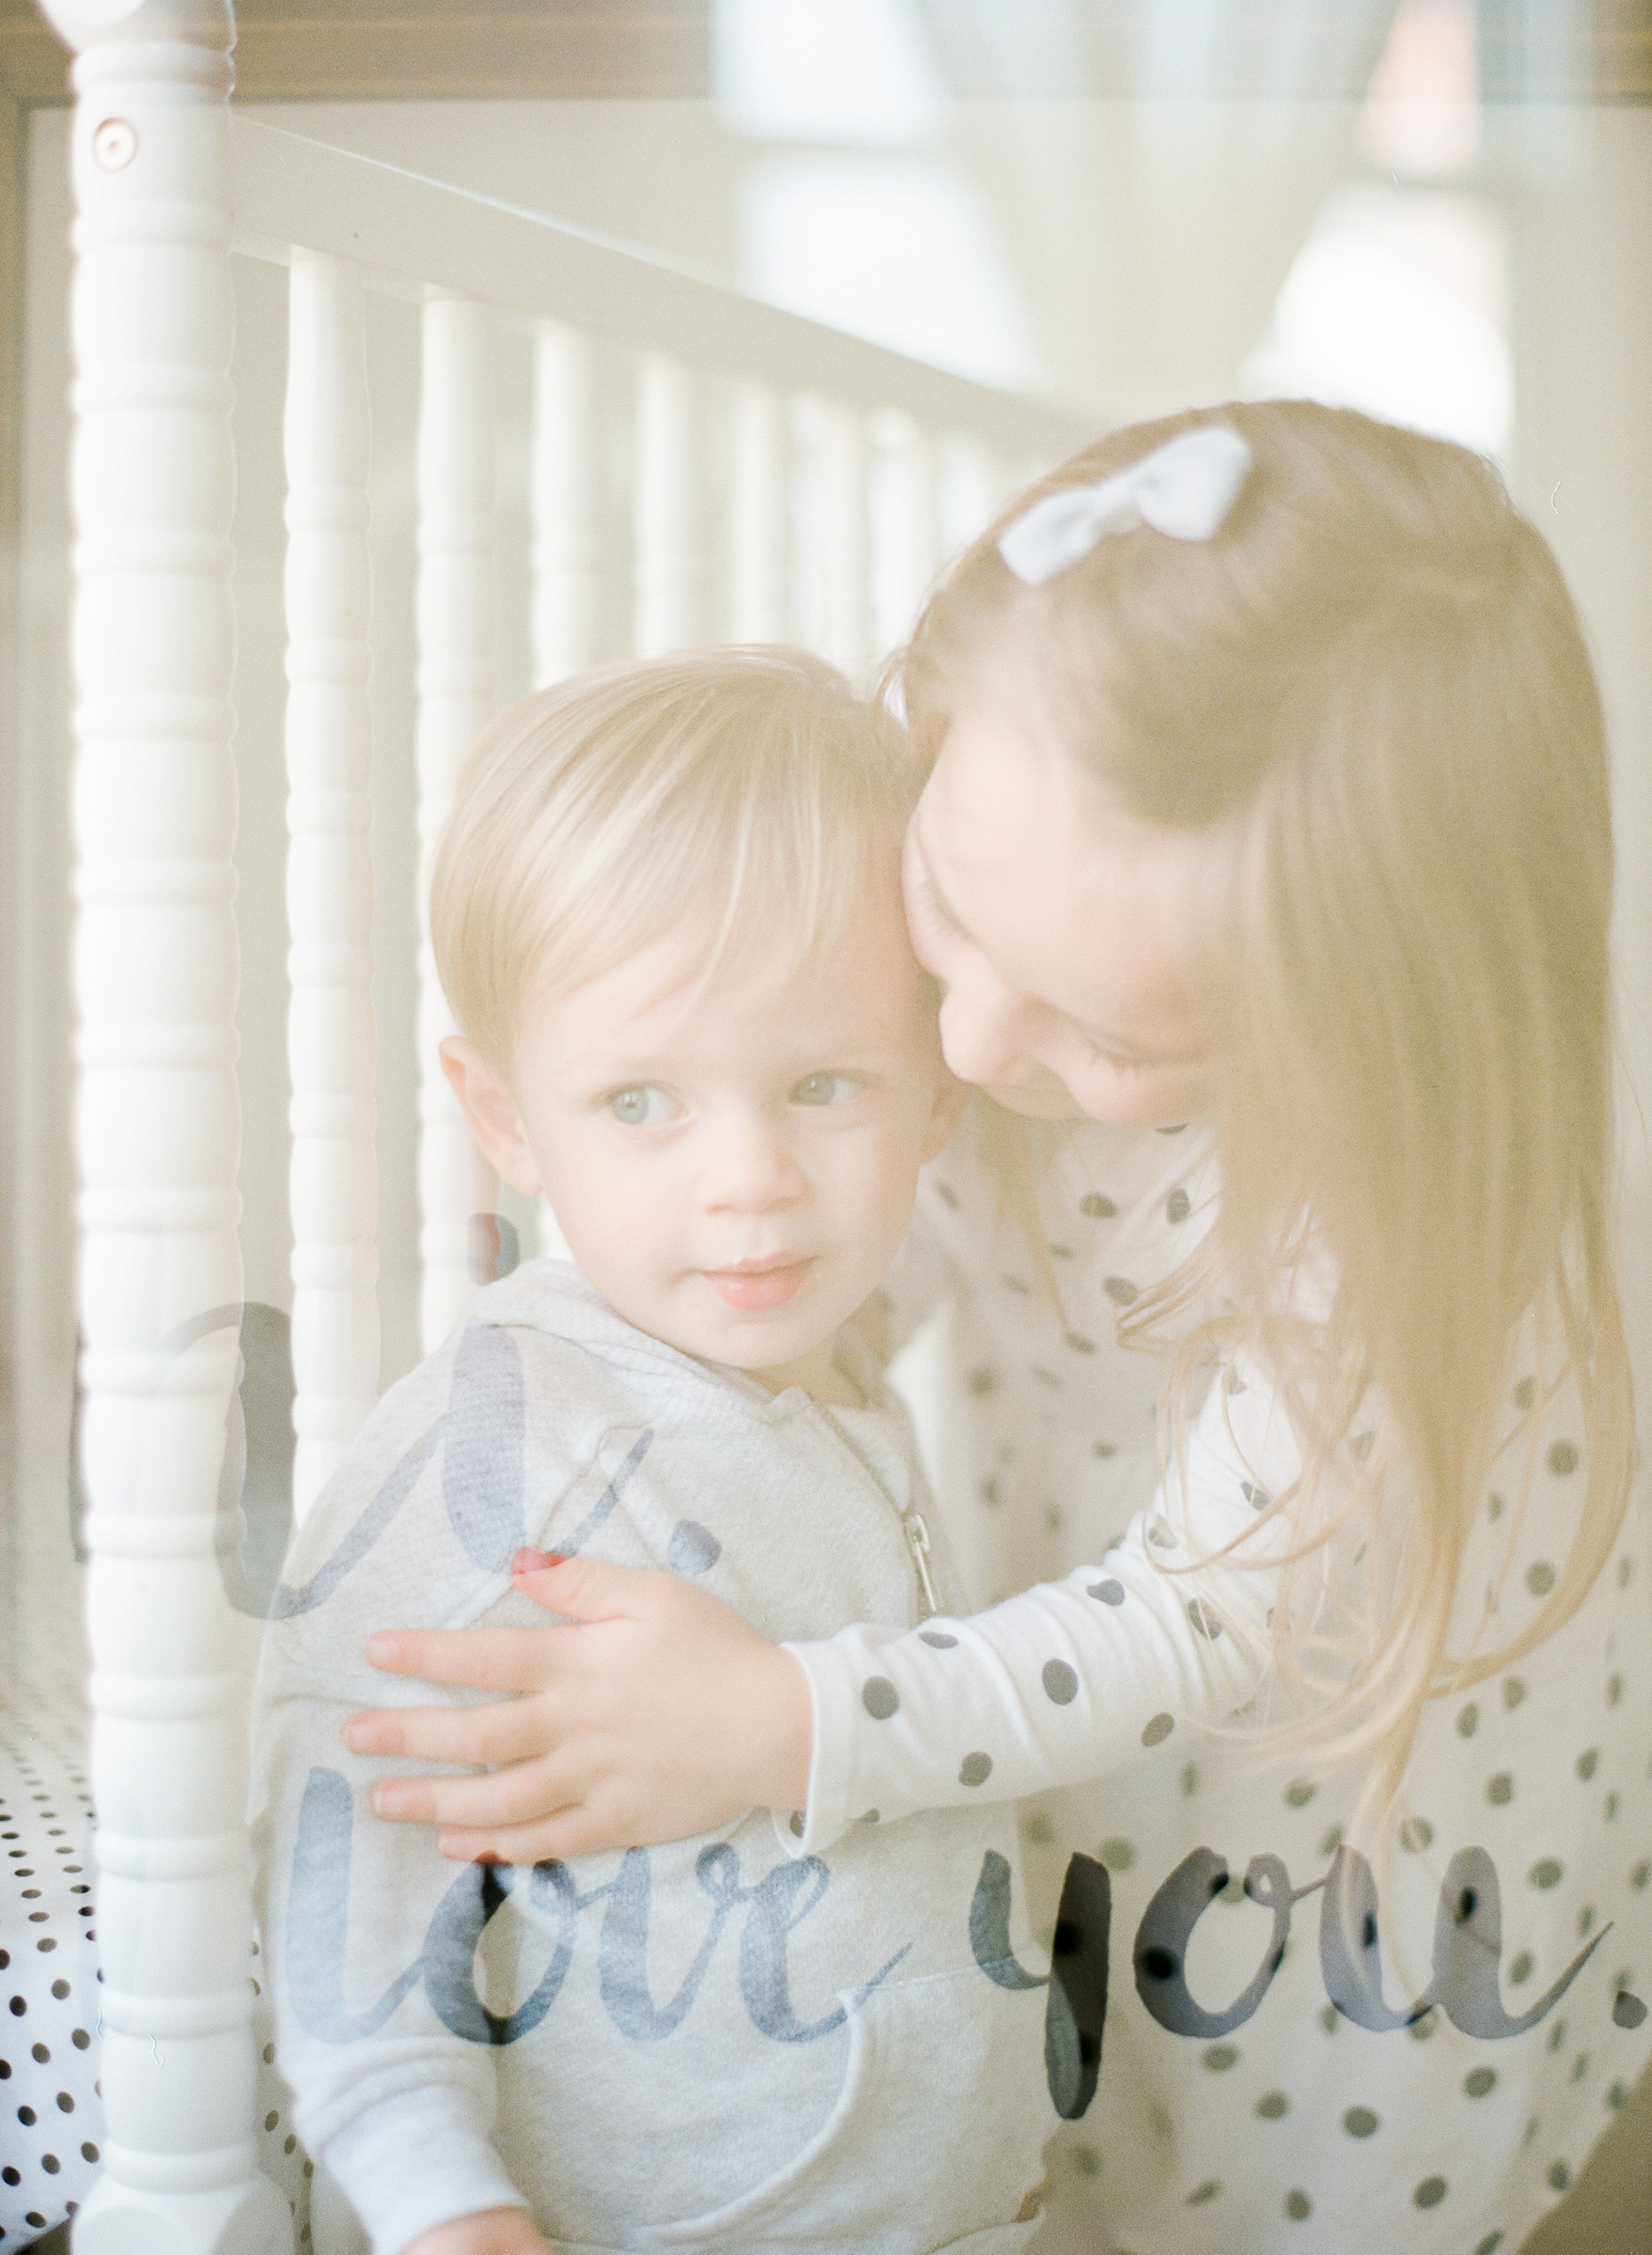 raleigh-family-film-photographer-home-session-maternity-baby-003